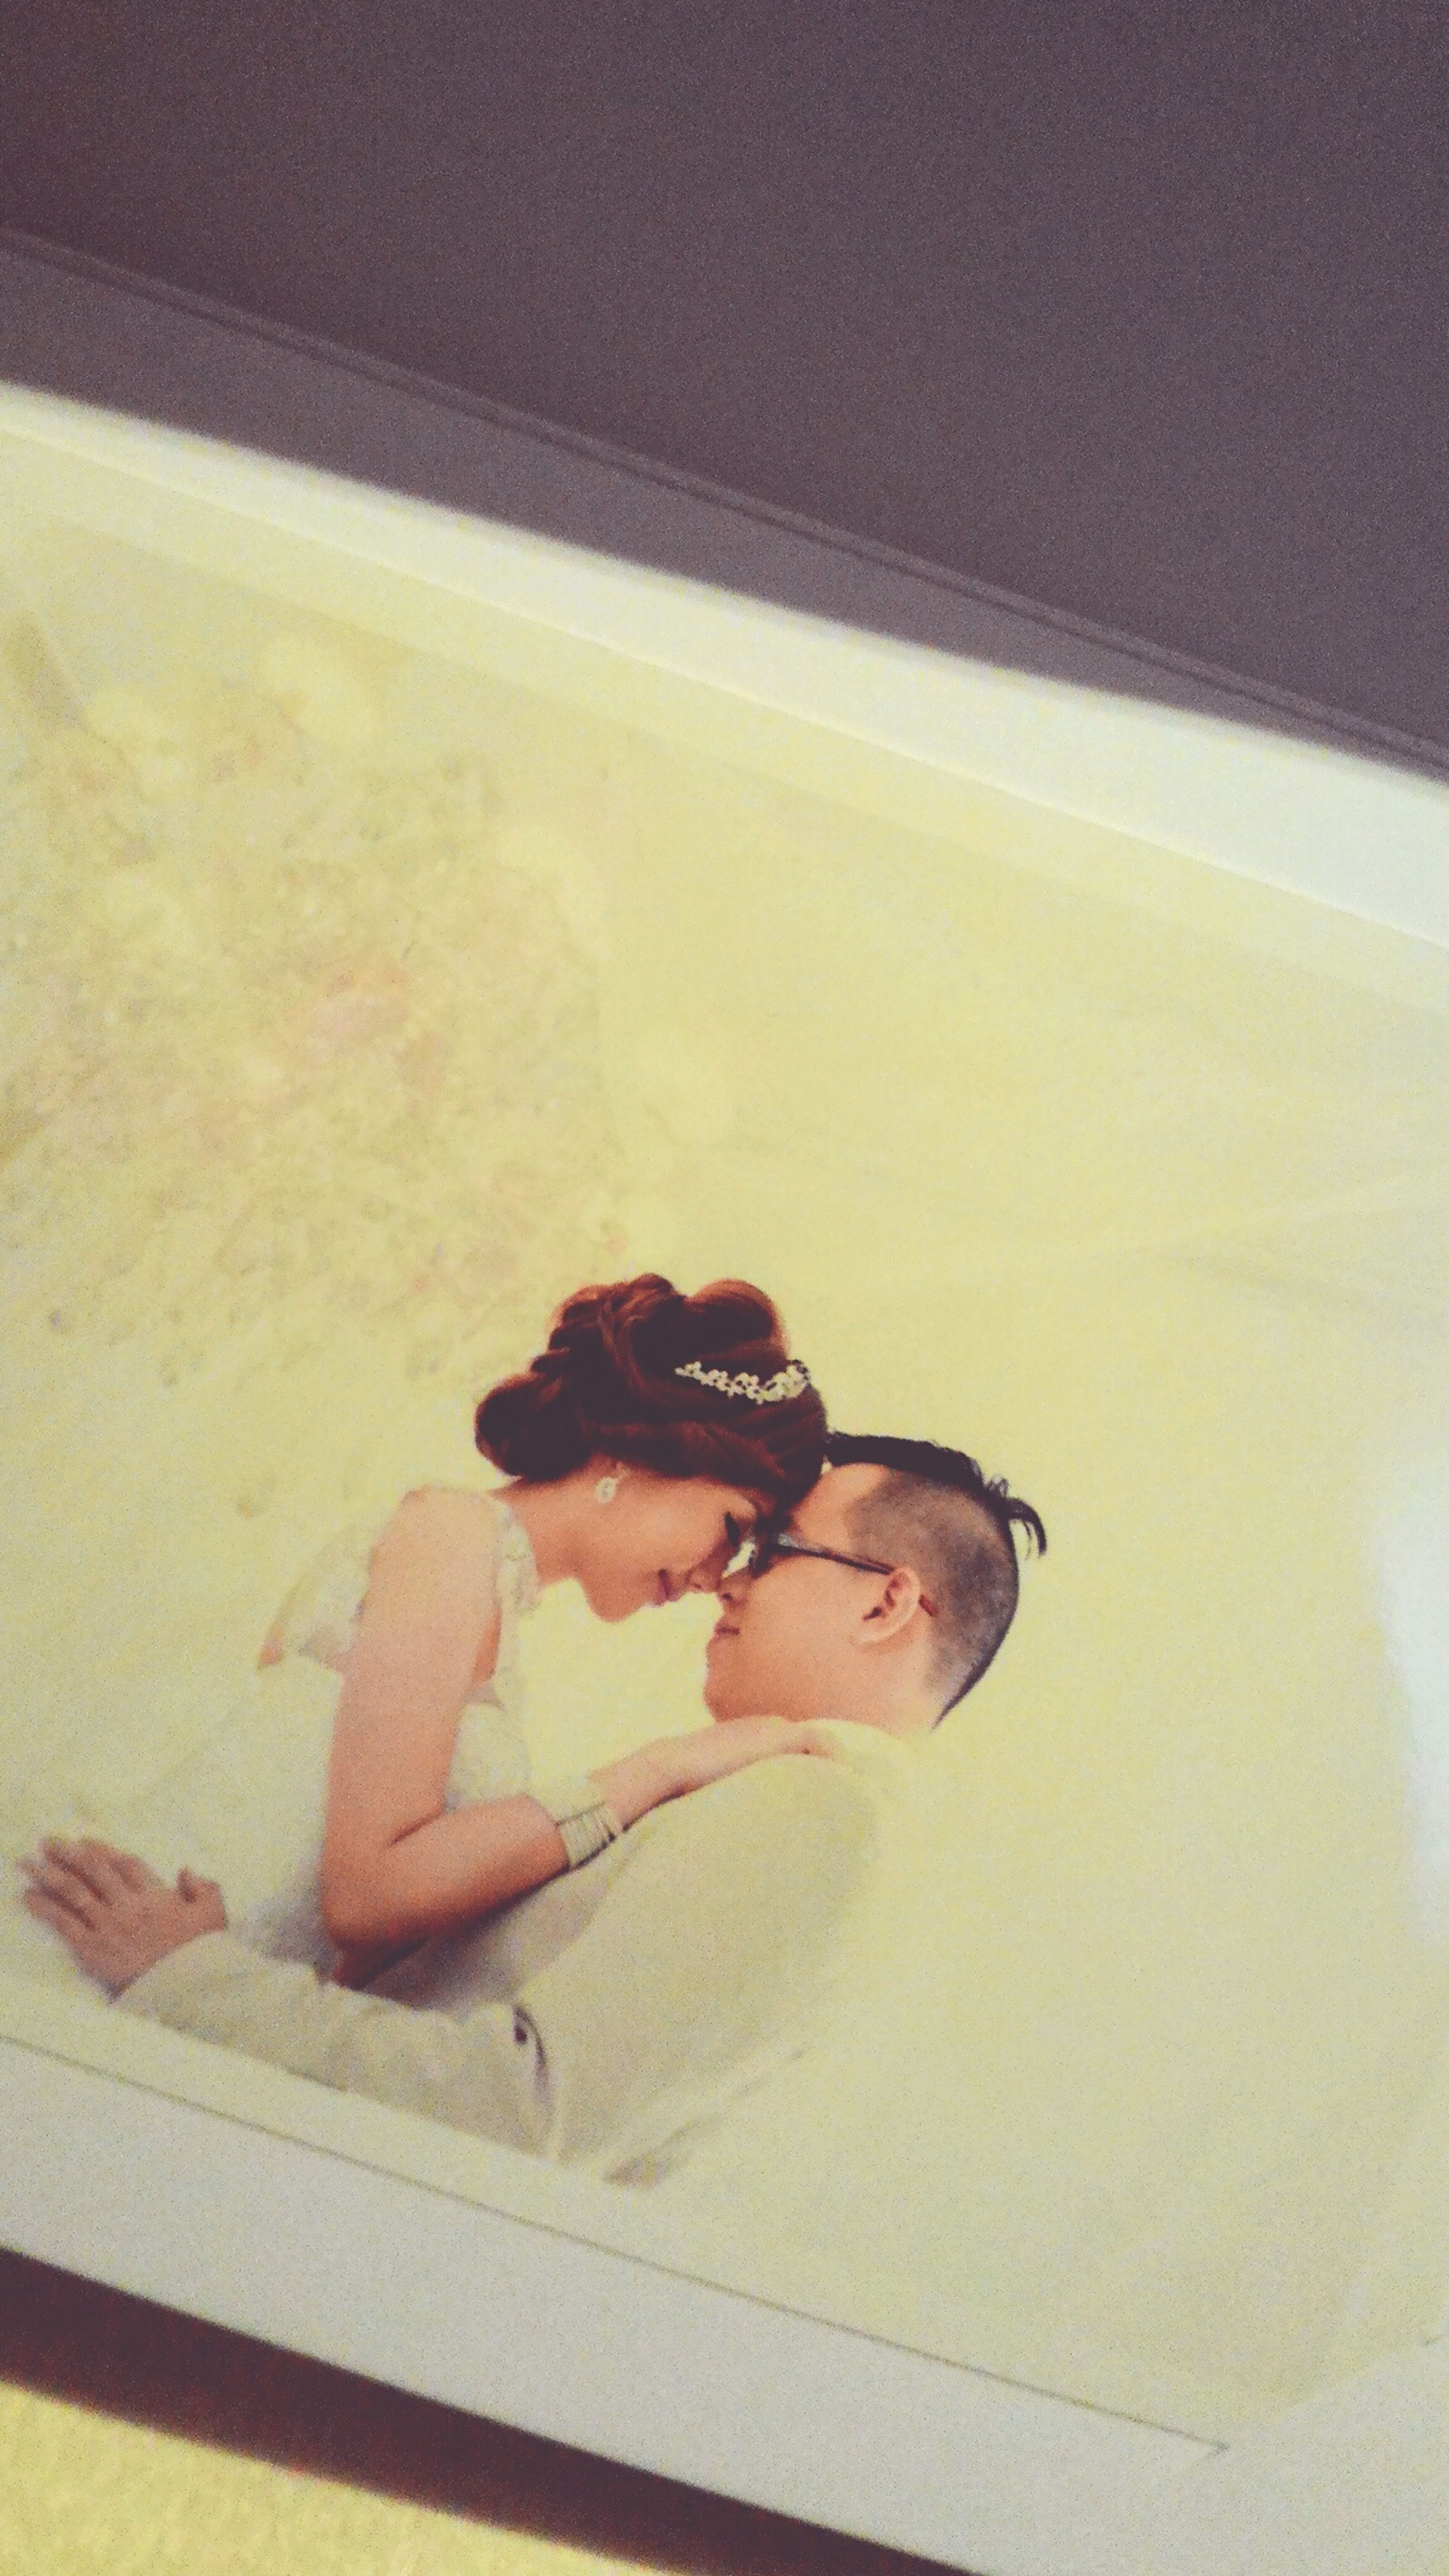 Schoolmates Finally Got Married Pray That  They'd be Bless With Lots Of Children Money and Health Wedded Wedding Wedding Photography Wedding Day Weddings Love Lovebirds Asian  Couple Happilyeverafter Happily Ever After